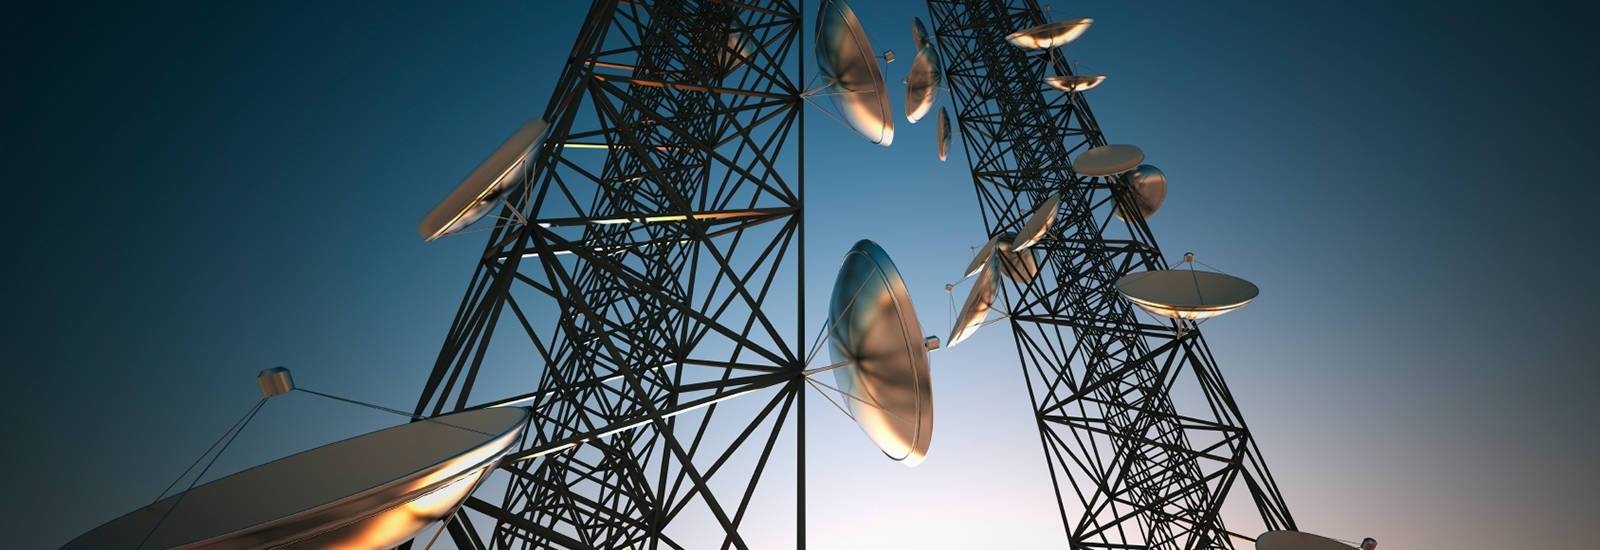 work-industries-telecommunications-services-by-solutions4business.jpg